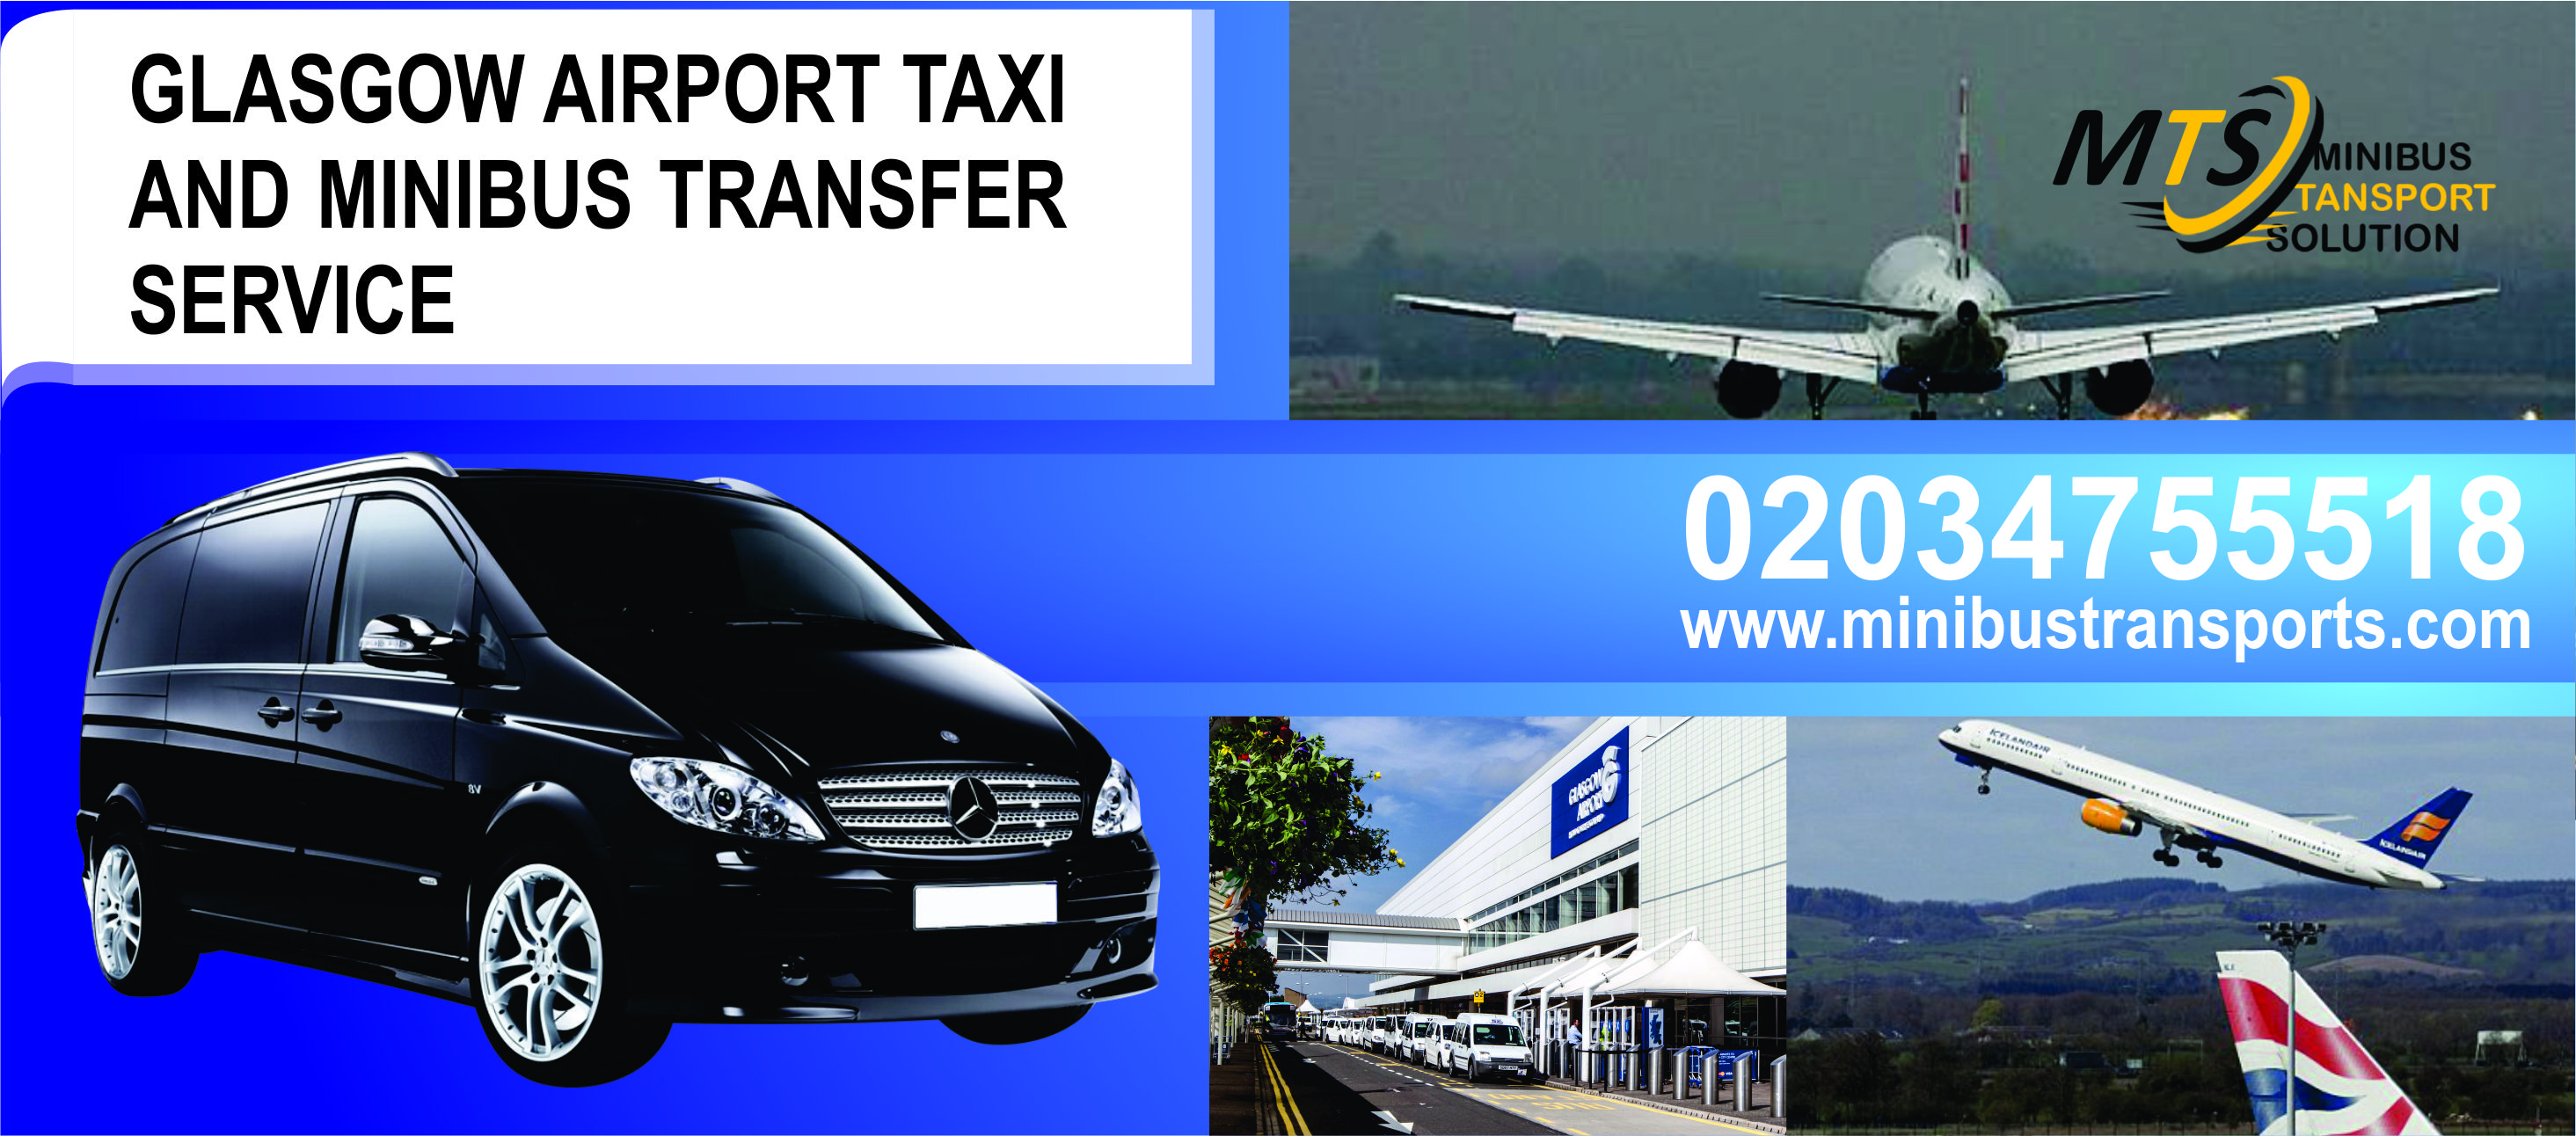 Glasgow Airport Taxis and Minibus Transfer London